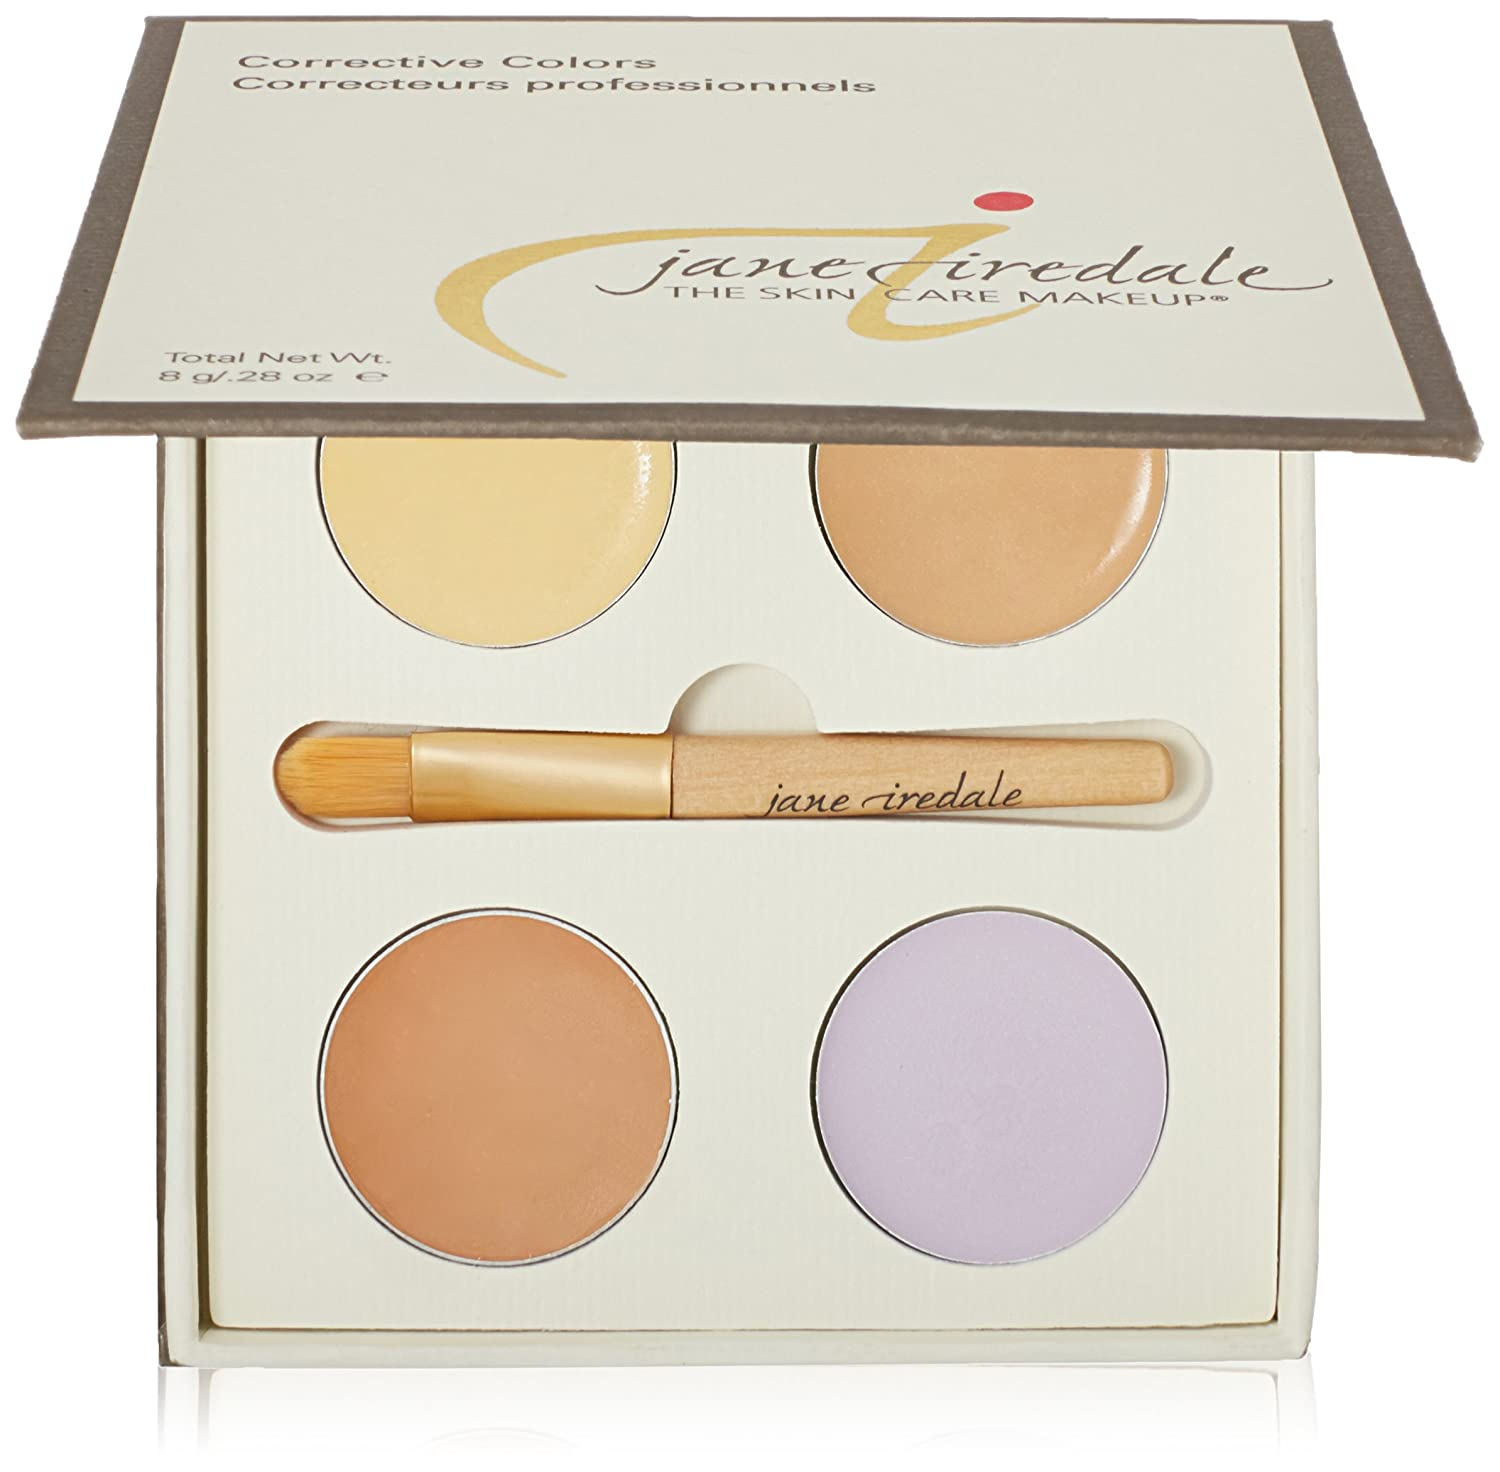 Makeup beauty and more jane cosmetics multi colored color correcting - Amazon Com Jane Iredale Corrective Colors Jane Iredale Luxury Beauty